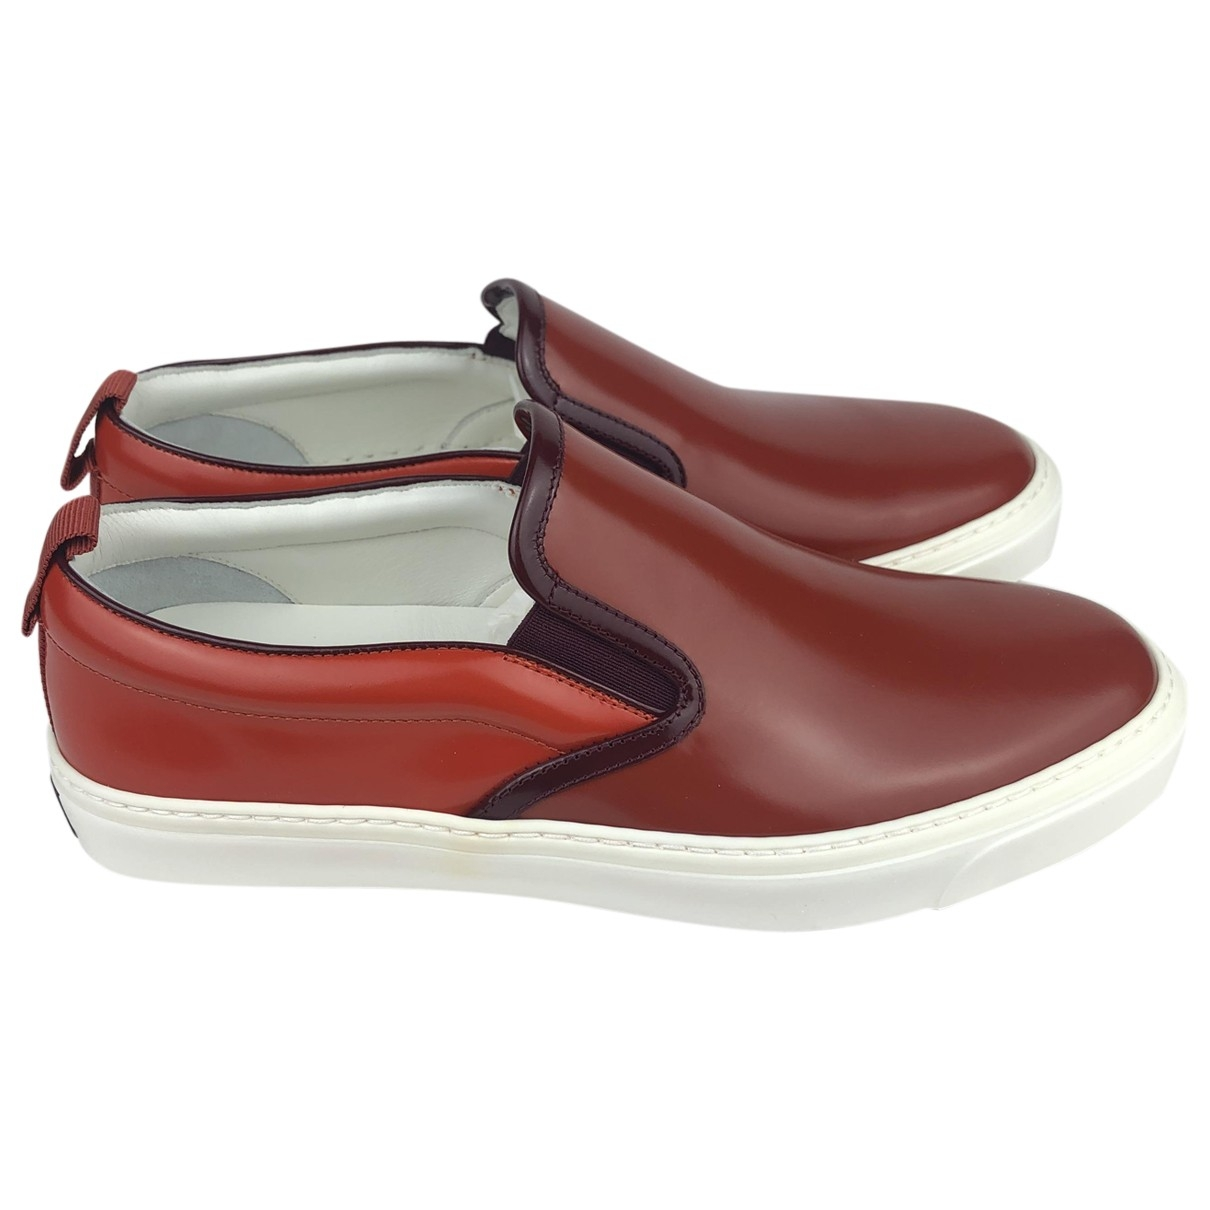 Gucci \N Sneakers in  Rot Lackleder